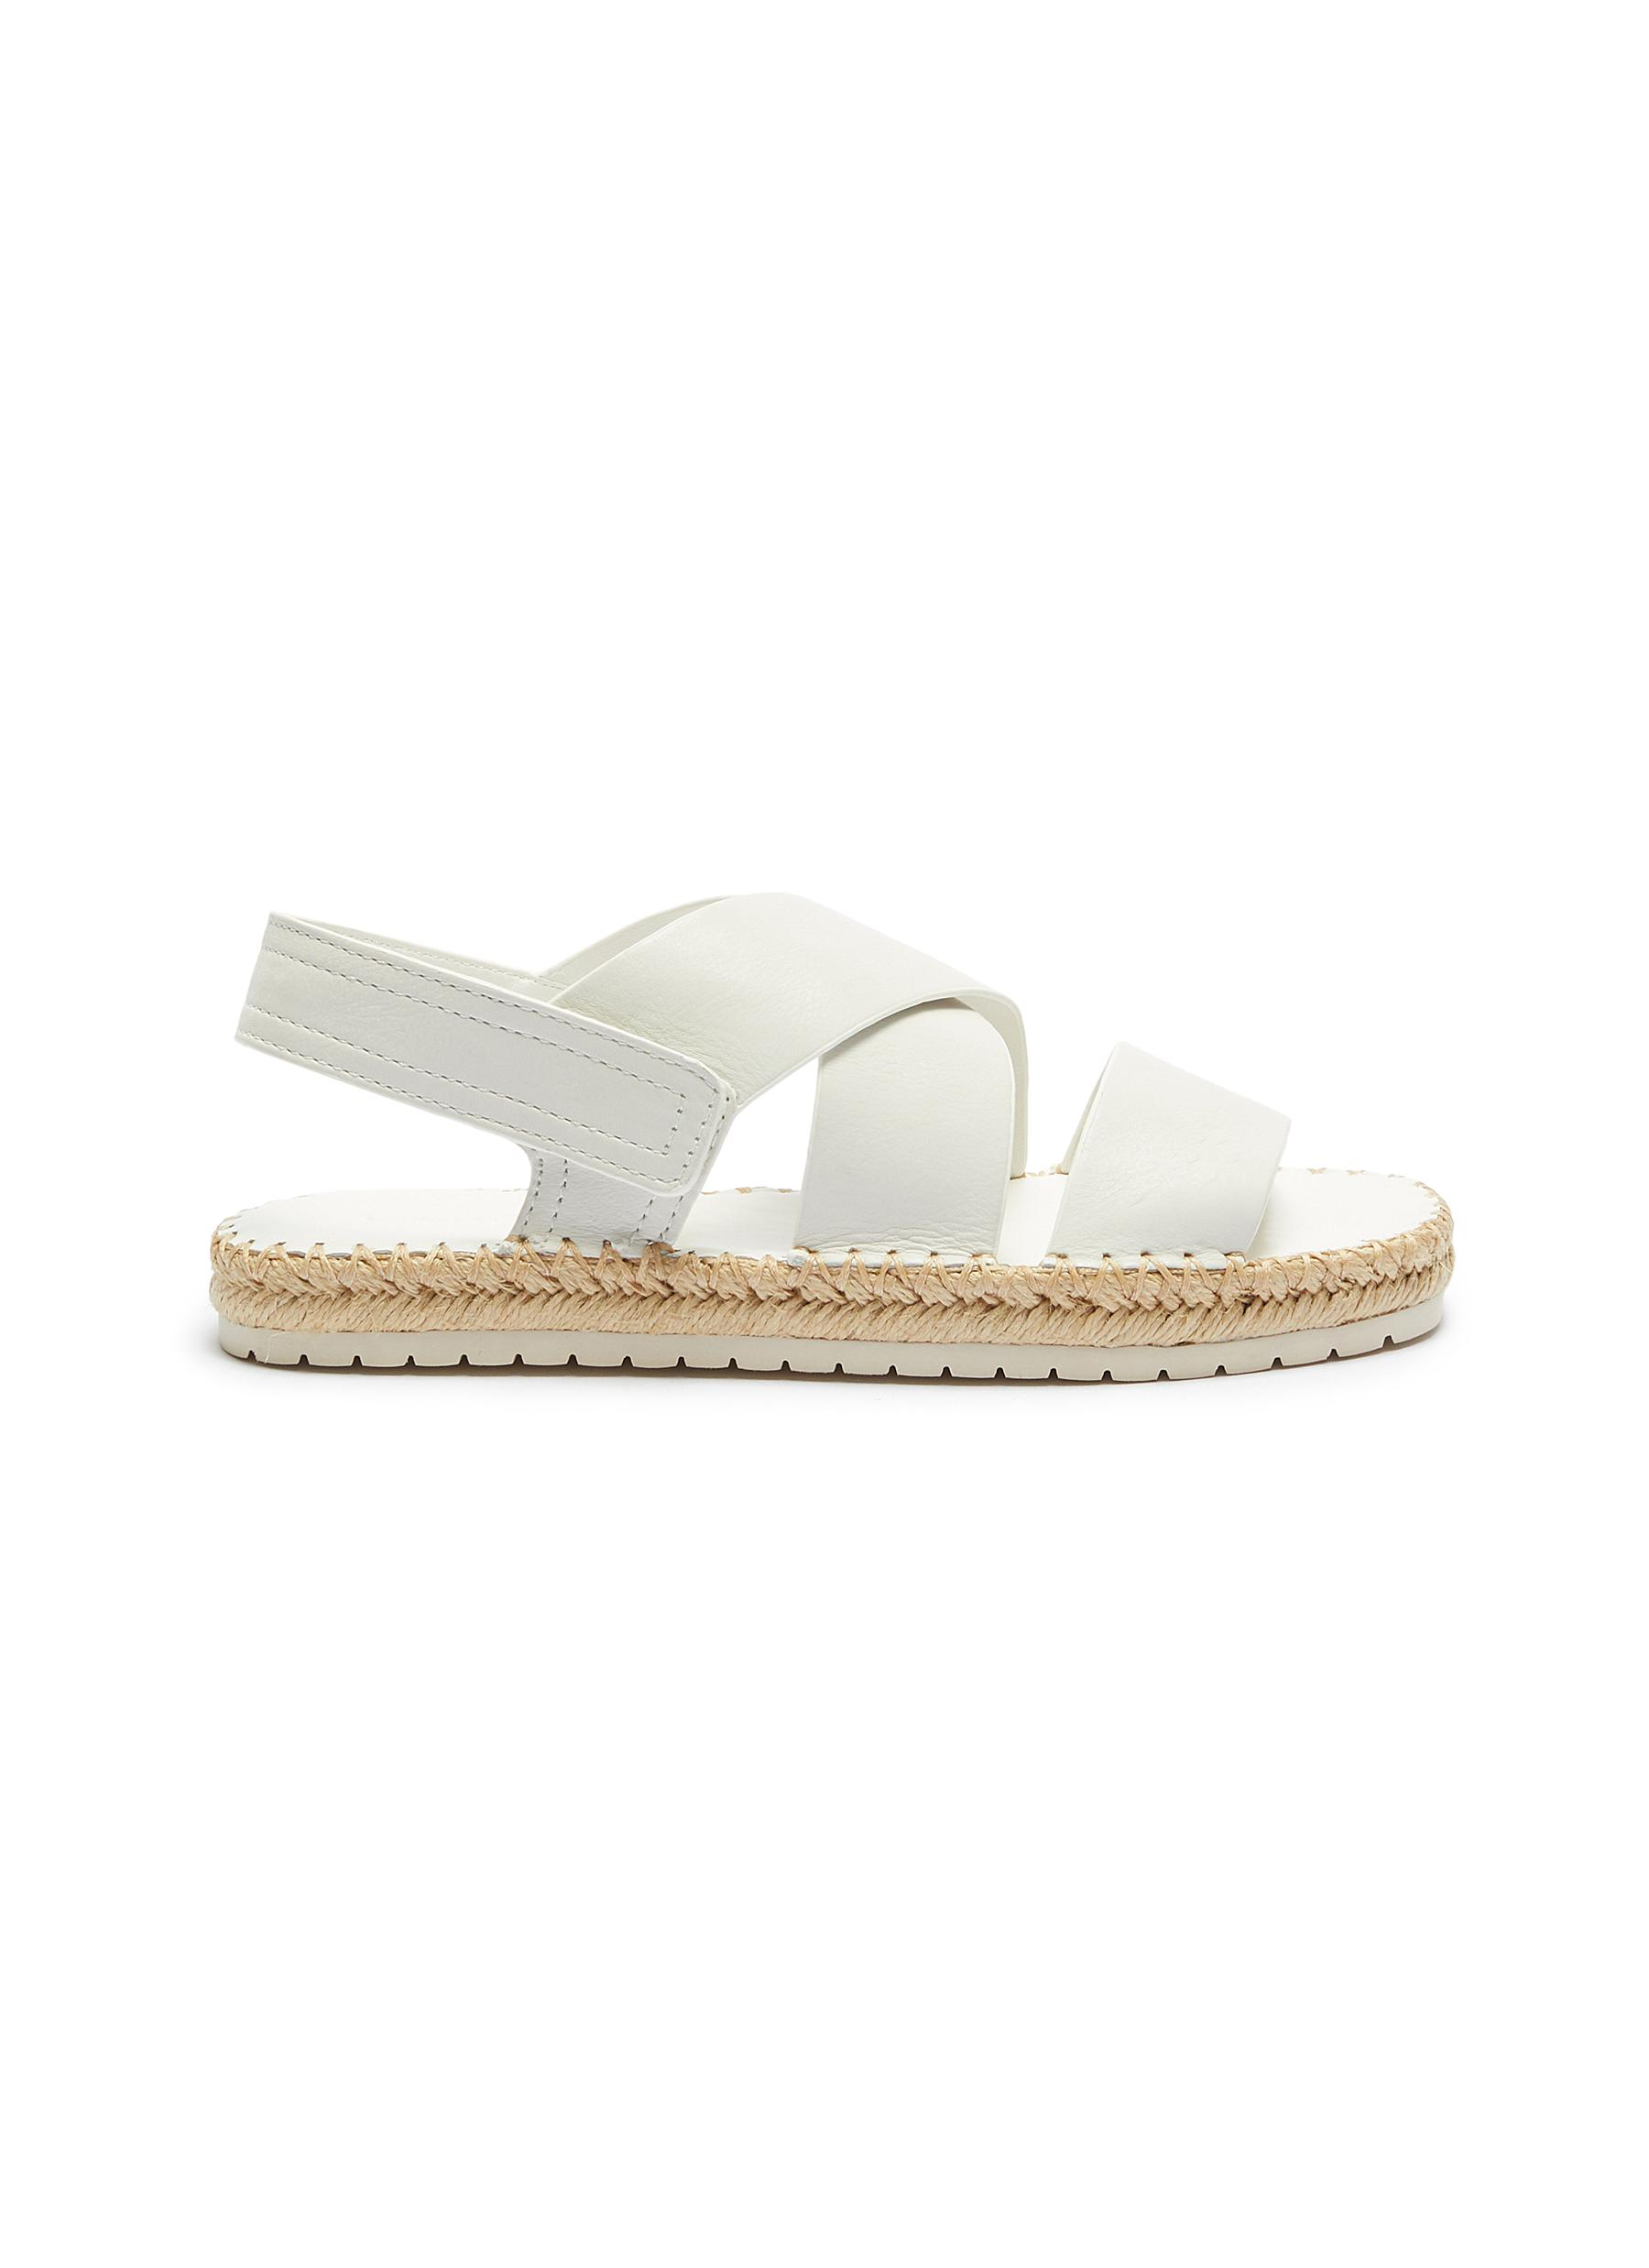 Tension cross strap leather espadrille sandals by Vince